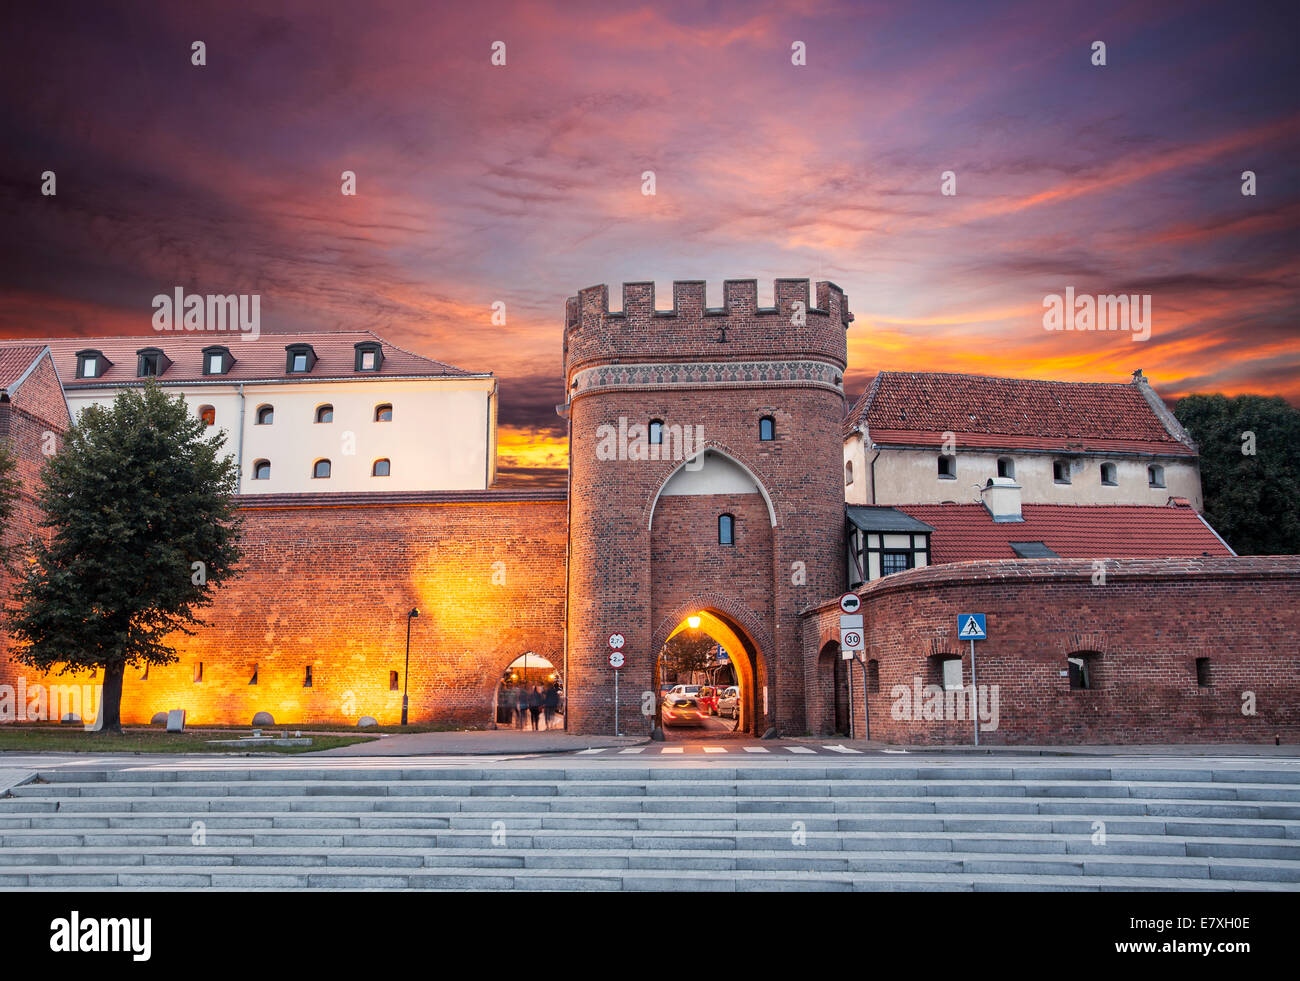 Sunset over old town of Torun, Poland. - Stock Image